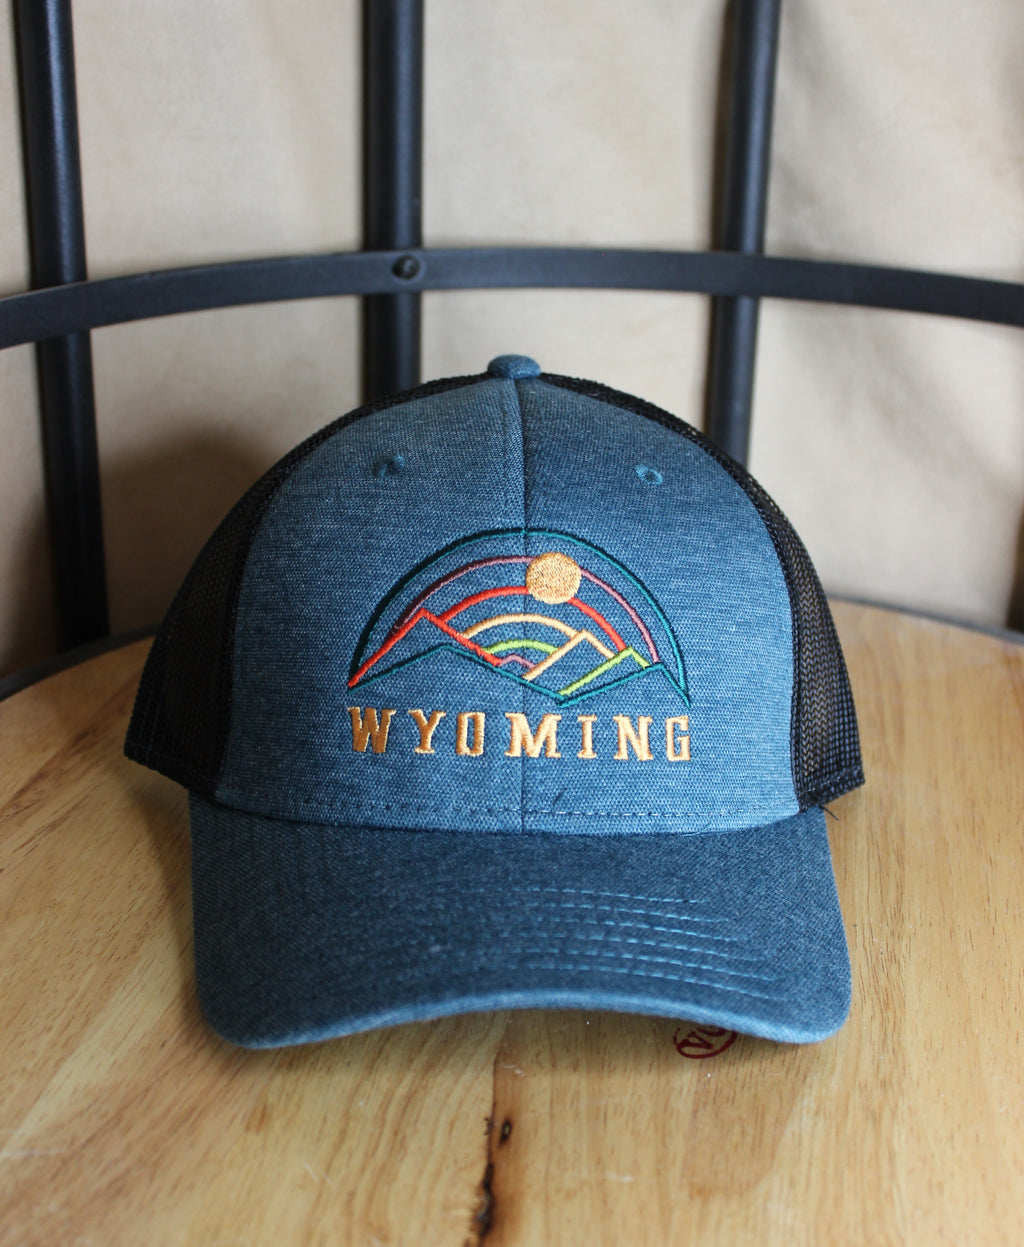 Threaded Mountains Trucker Hat- dark teal and black